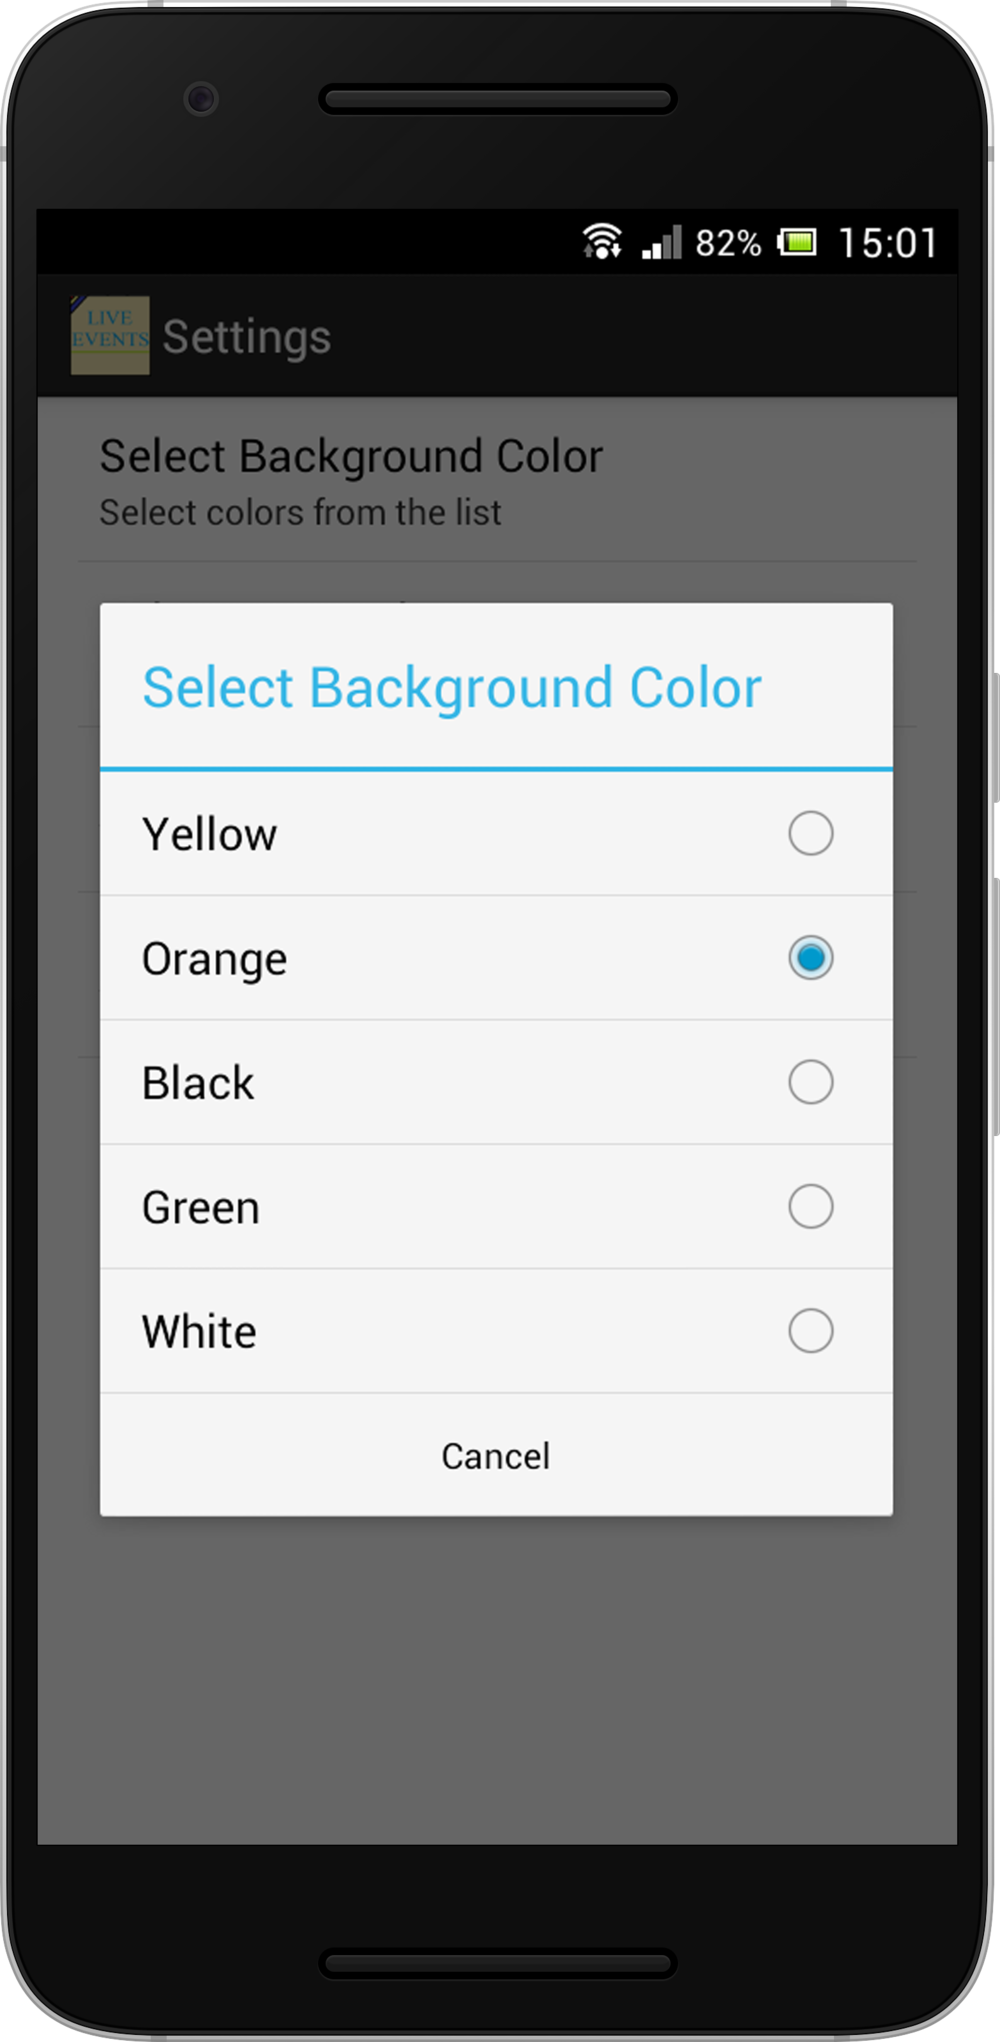 Preference - To select Background Color